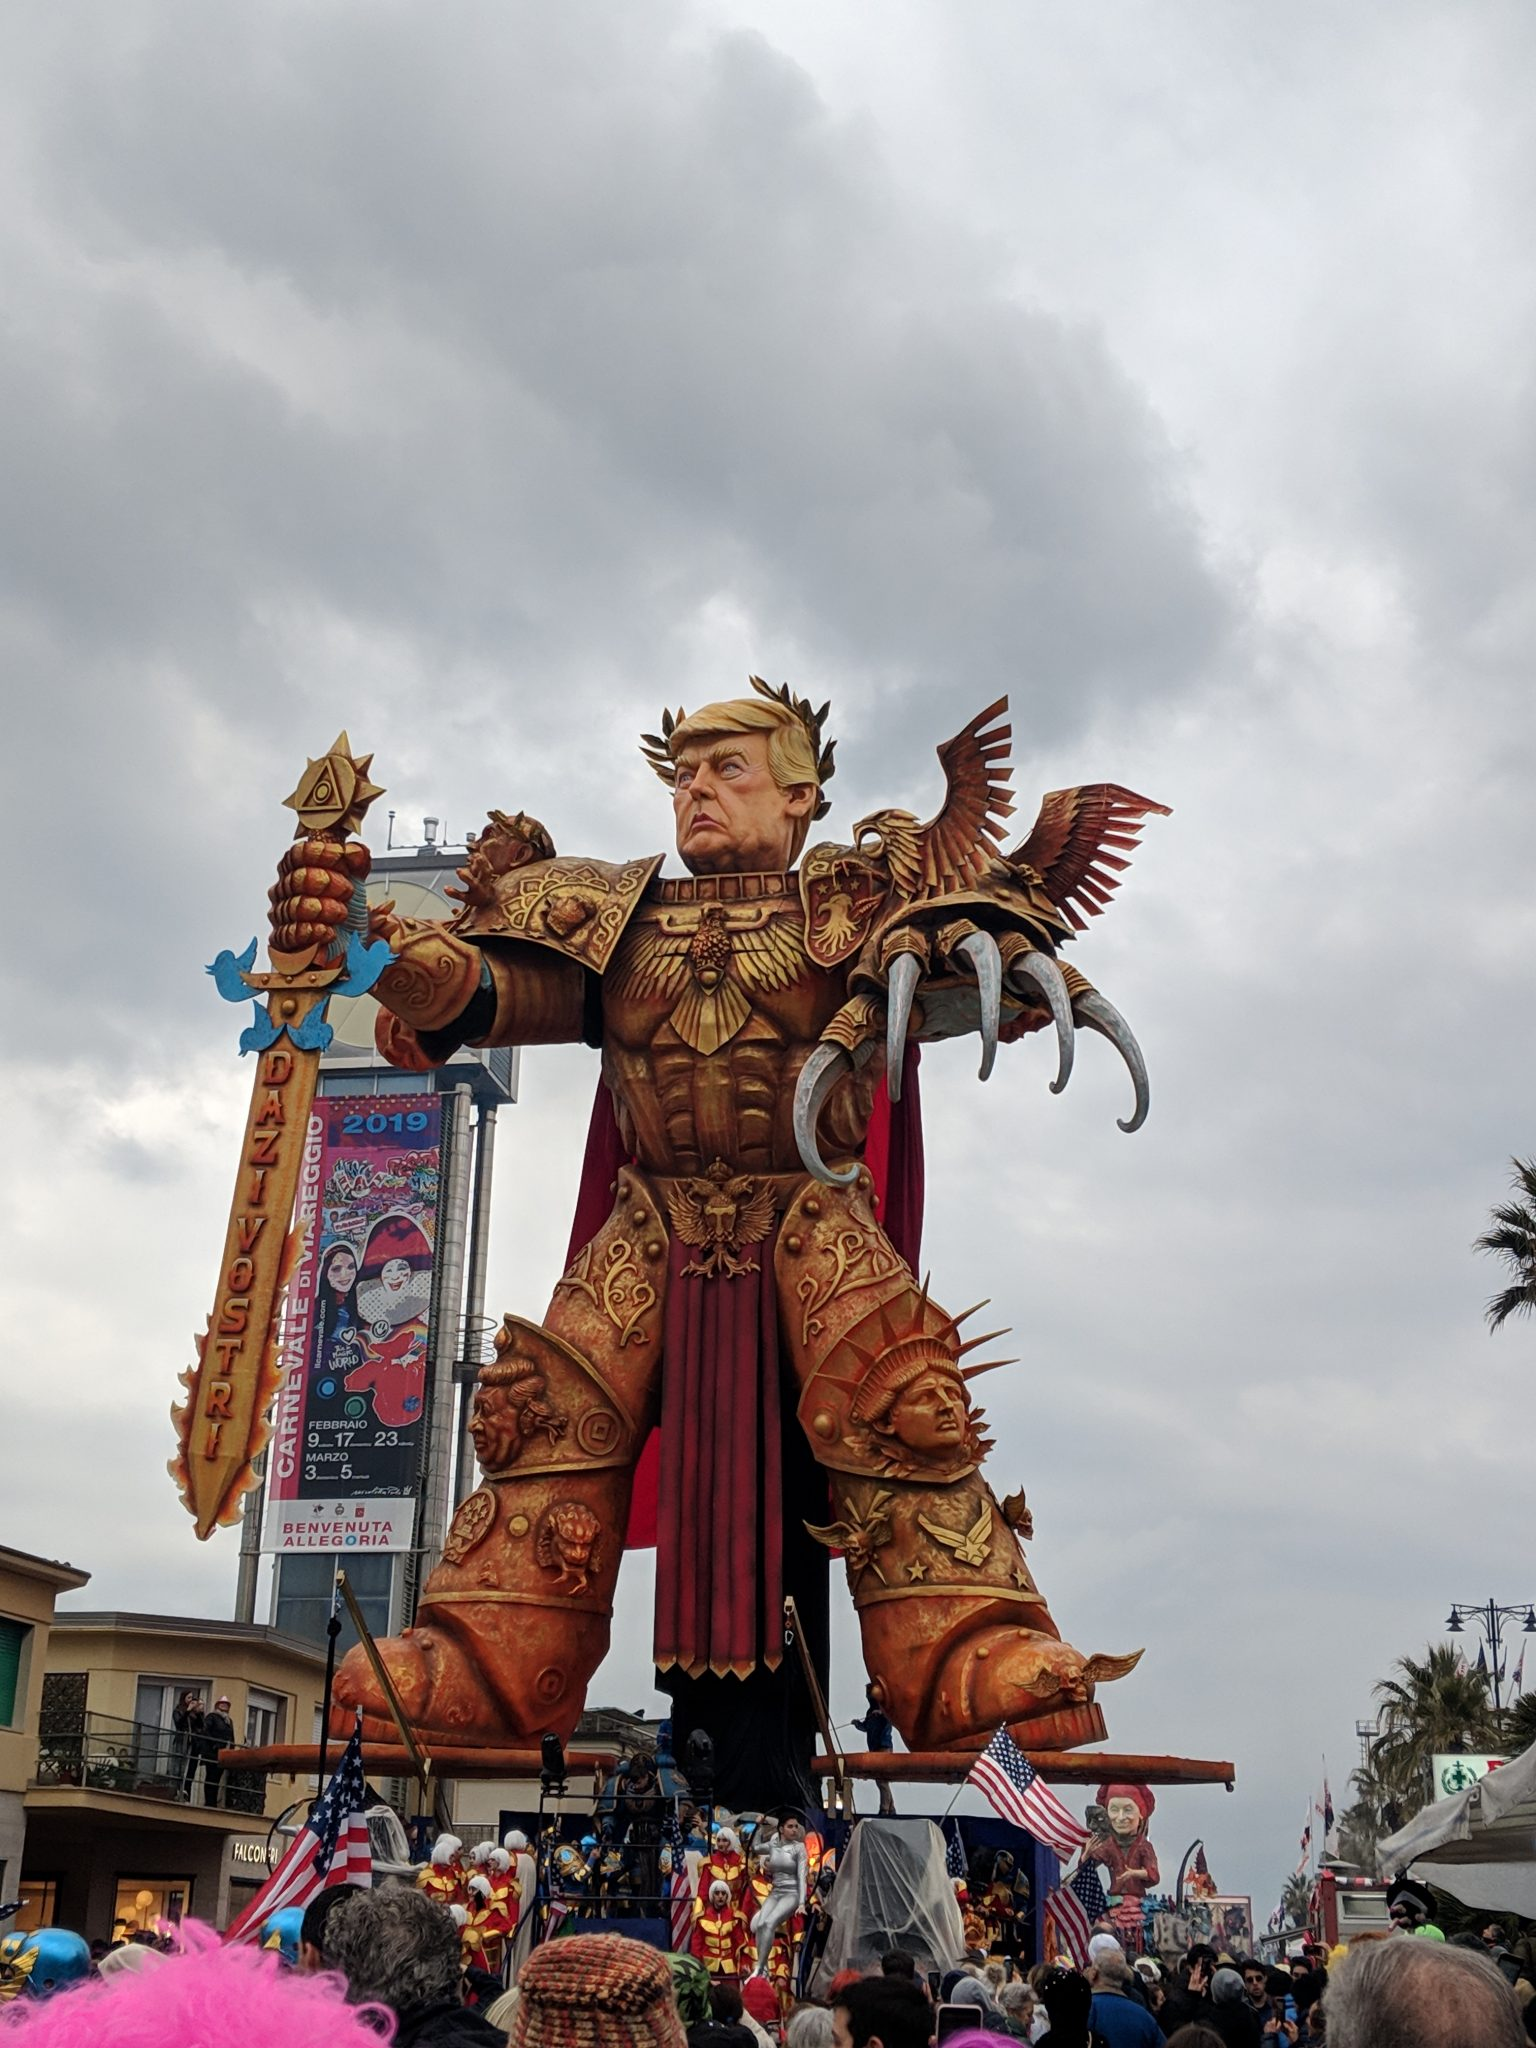 Viareggio: Capital of the Italian Carnival